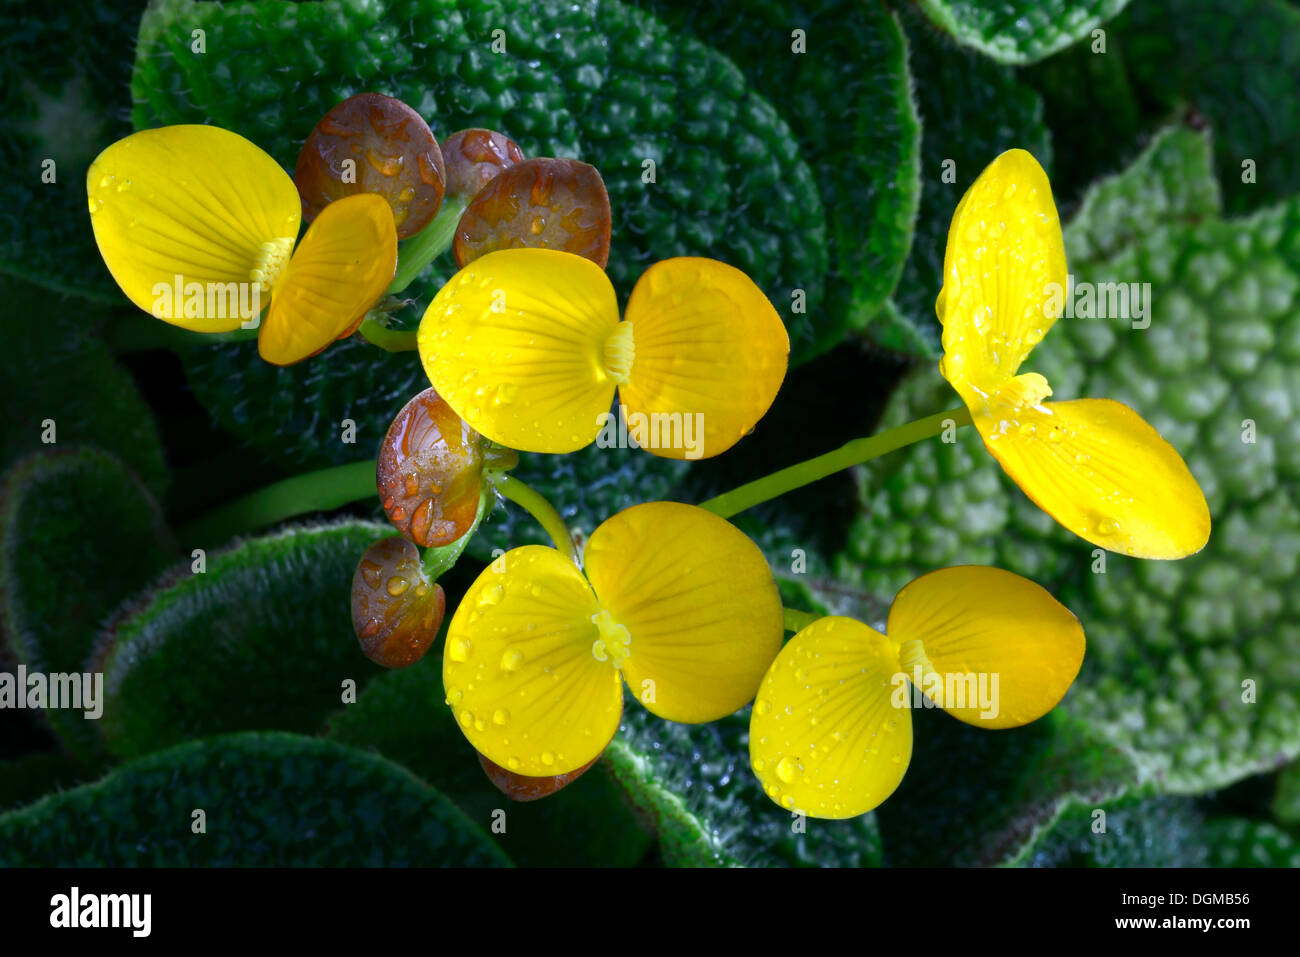 Species of Begonia (Begonia ficicola), blossoms, Nigeria, Africa - Stock Image